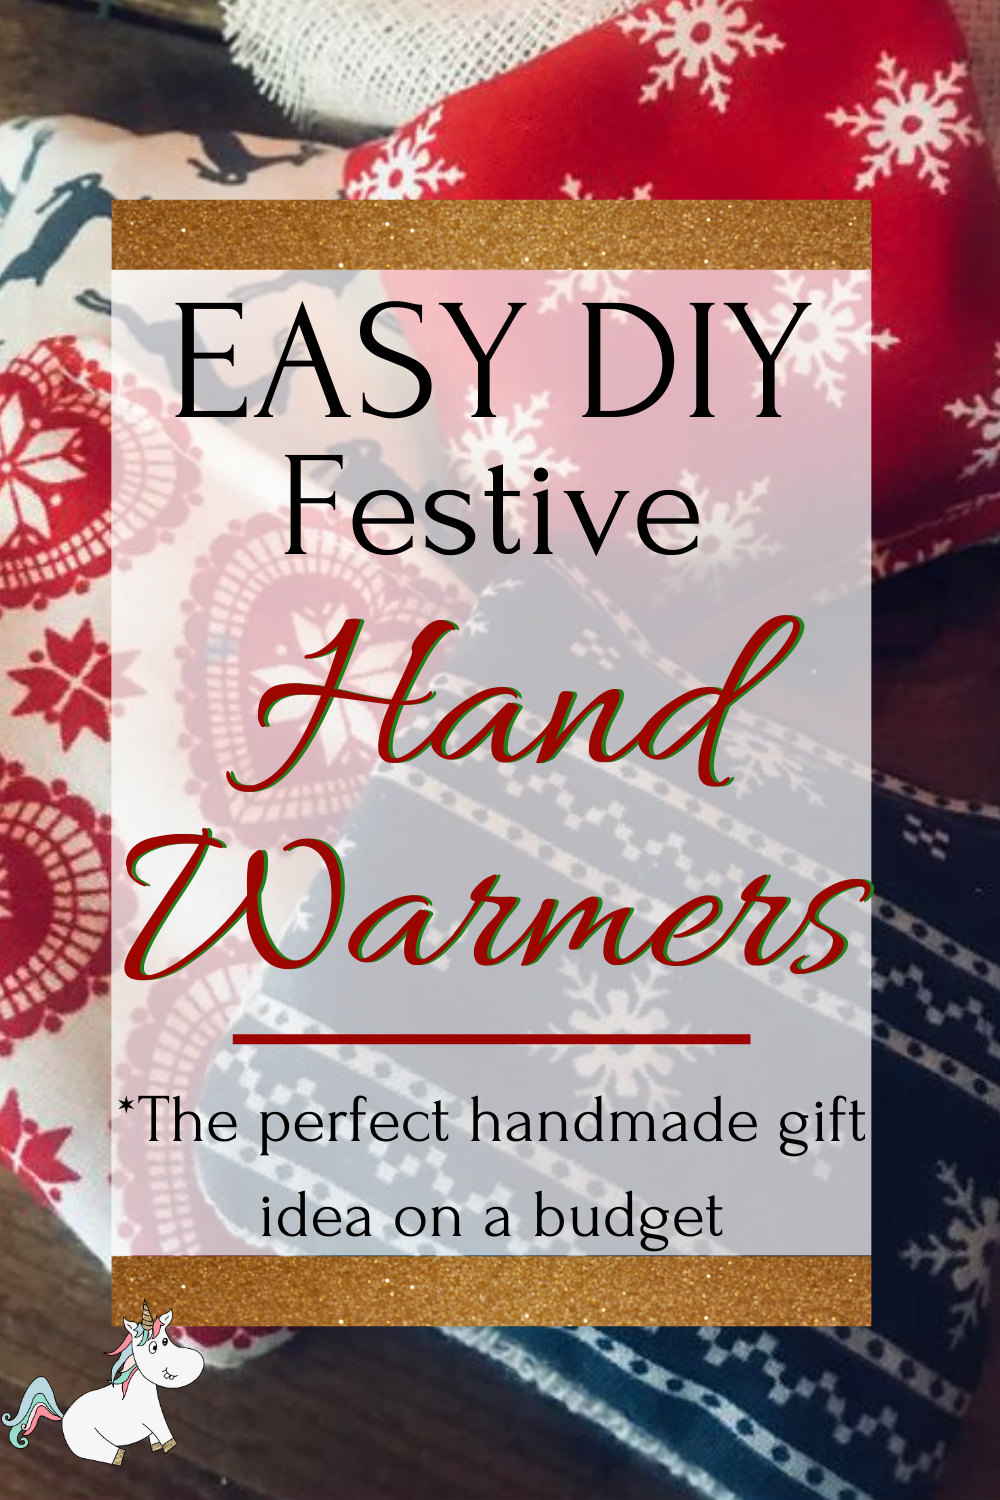 DIY Hand Warmers | The Perfect Handmade Christmas Gift Idea! Cheap & Easy Christmas gift, christmas craft, diy christmas gift, festive craft via: https://themummyfront.com #christmascraftideas #diychristmasgift #handwarmers #themummyfront #diyhandwarmers #festivecraftidea #christmasgift